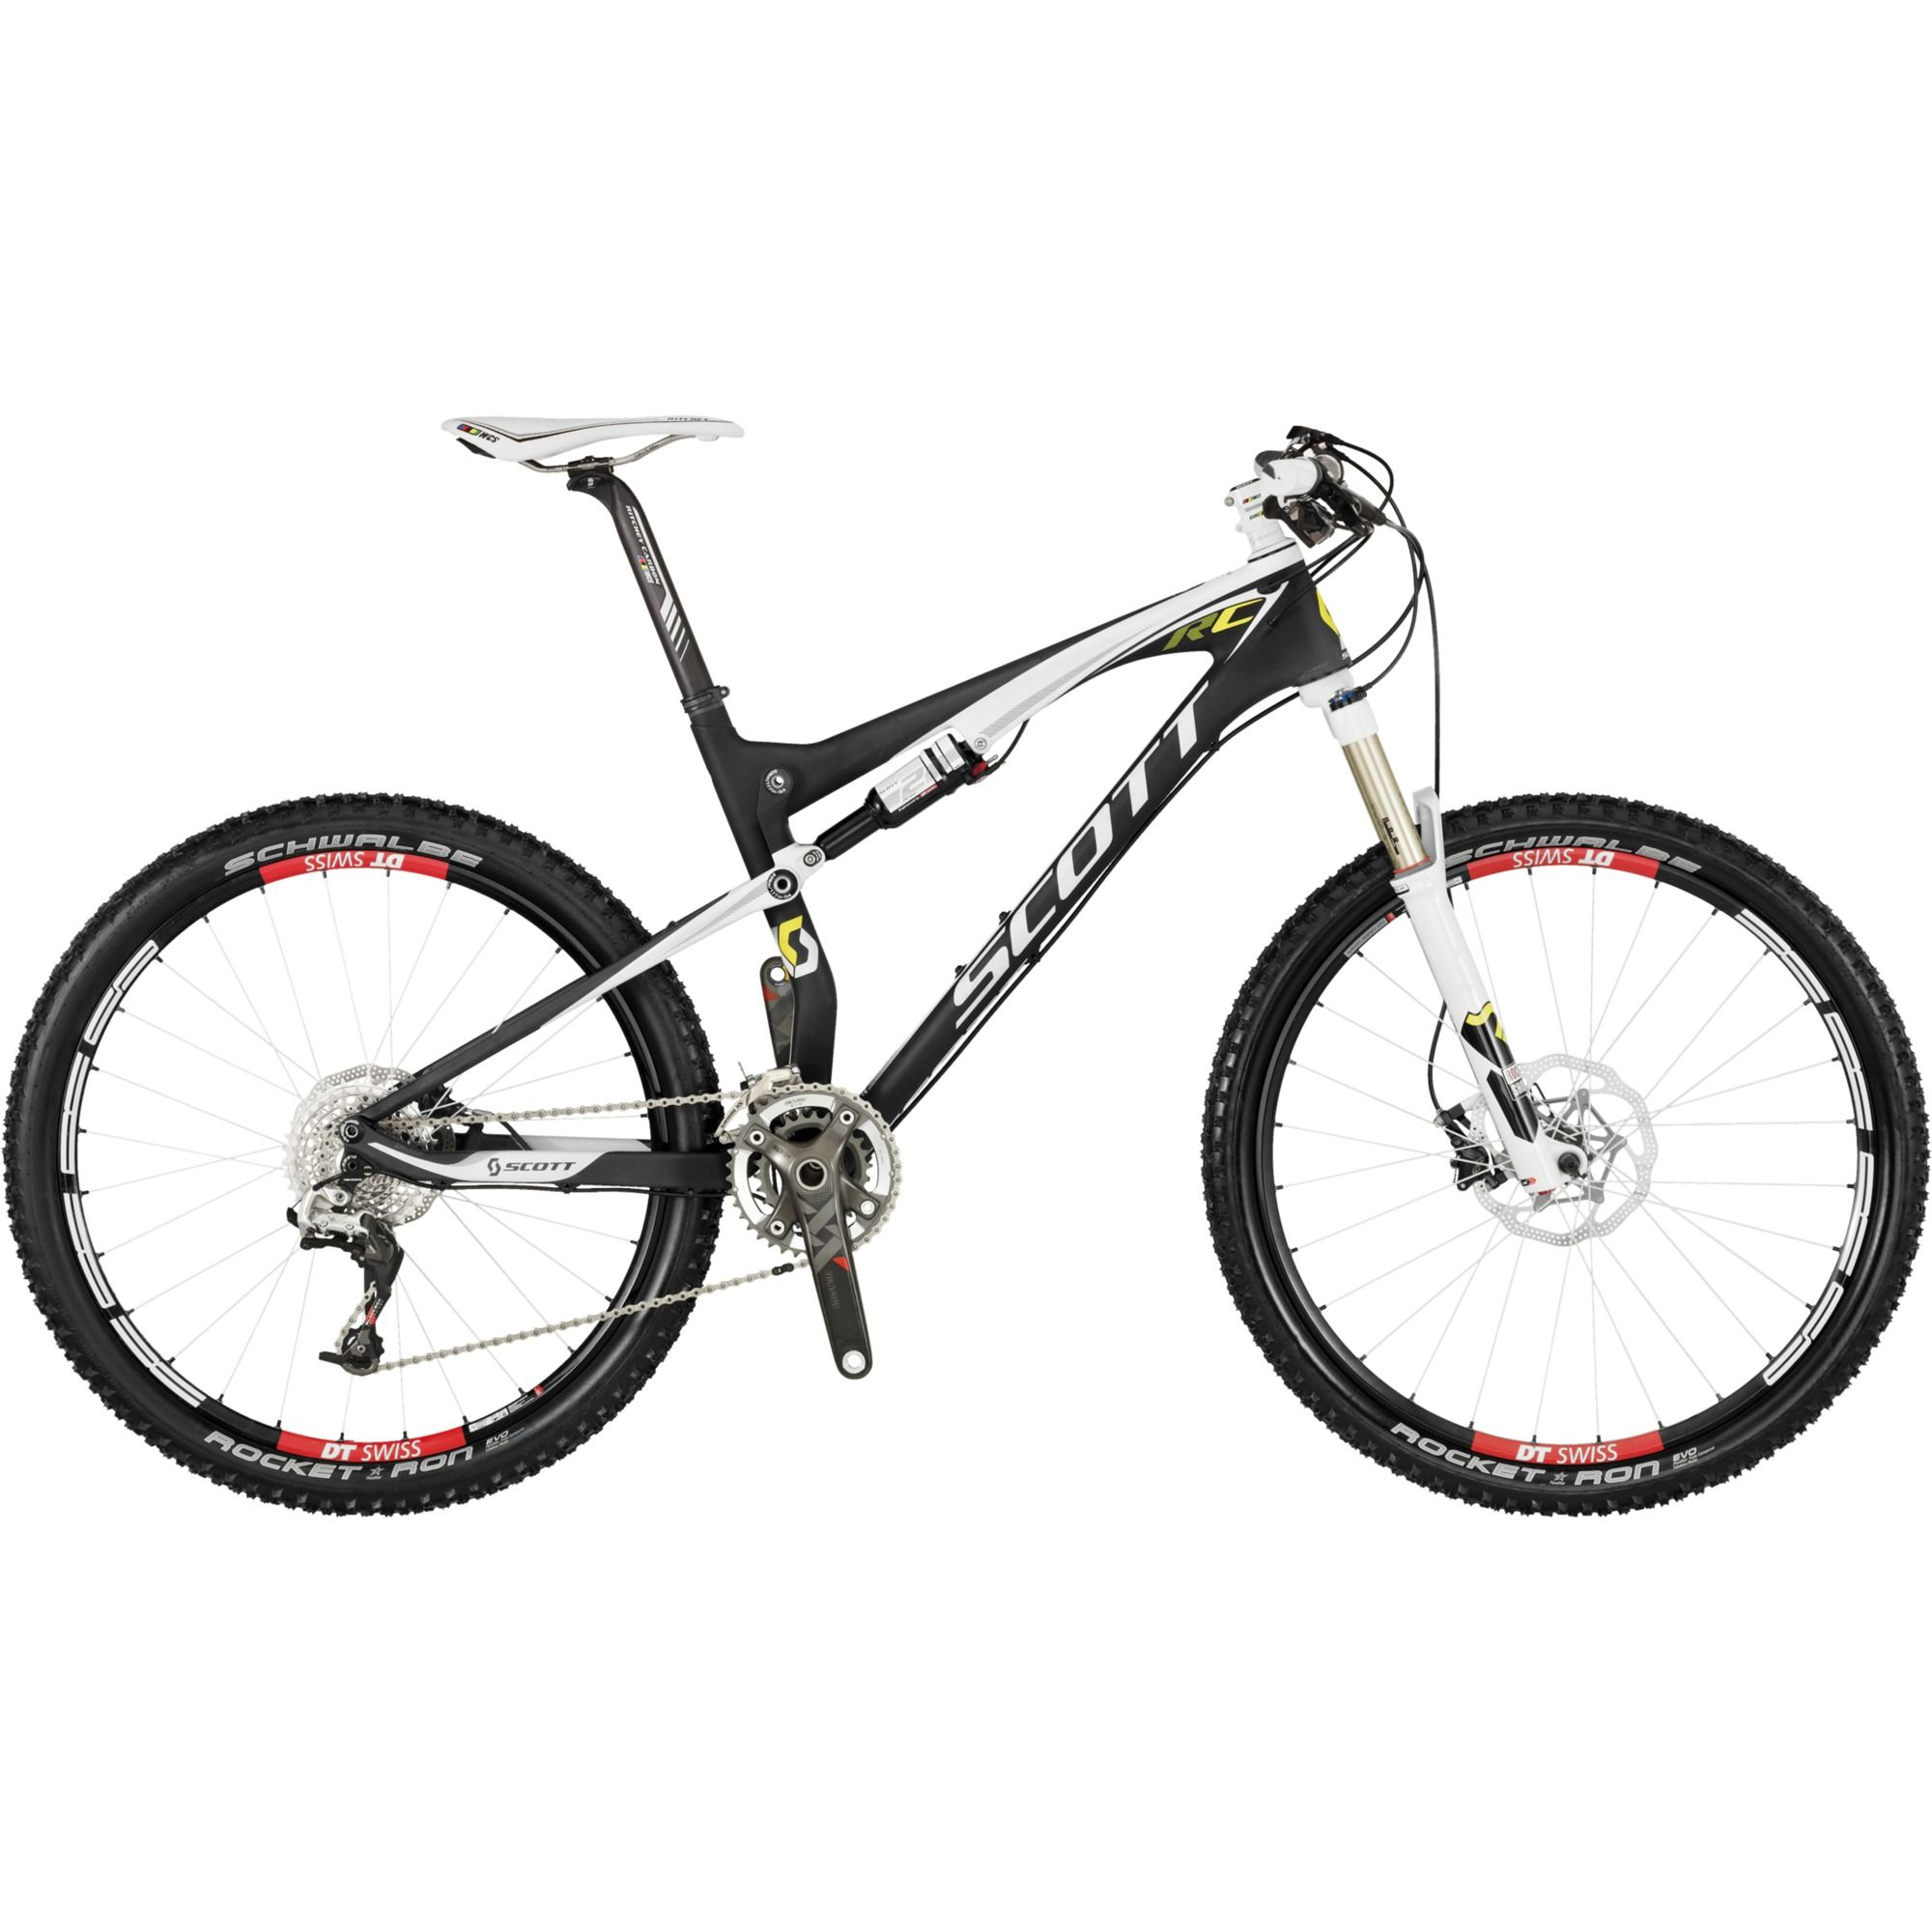 09523953c88 The Spark RC is a race worthy 26